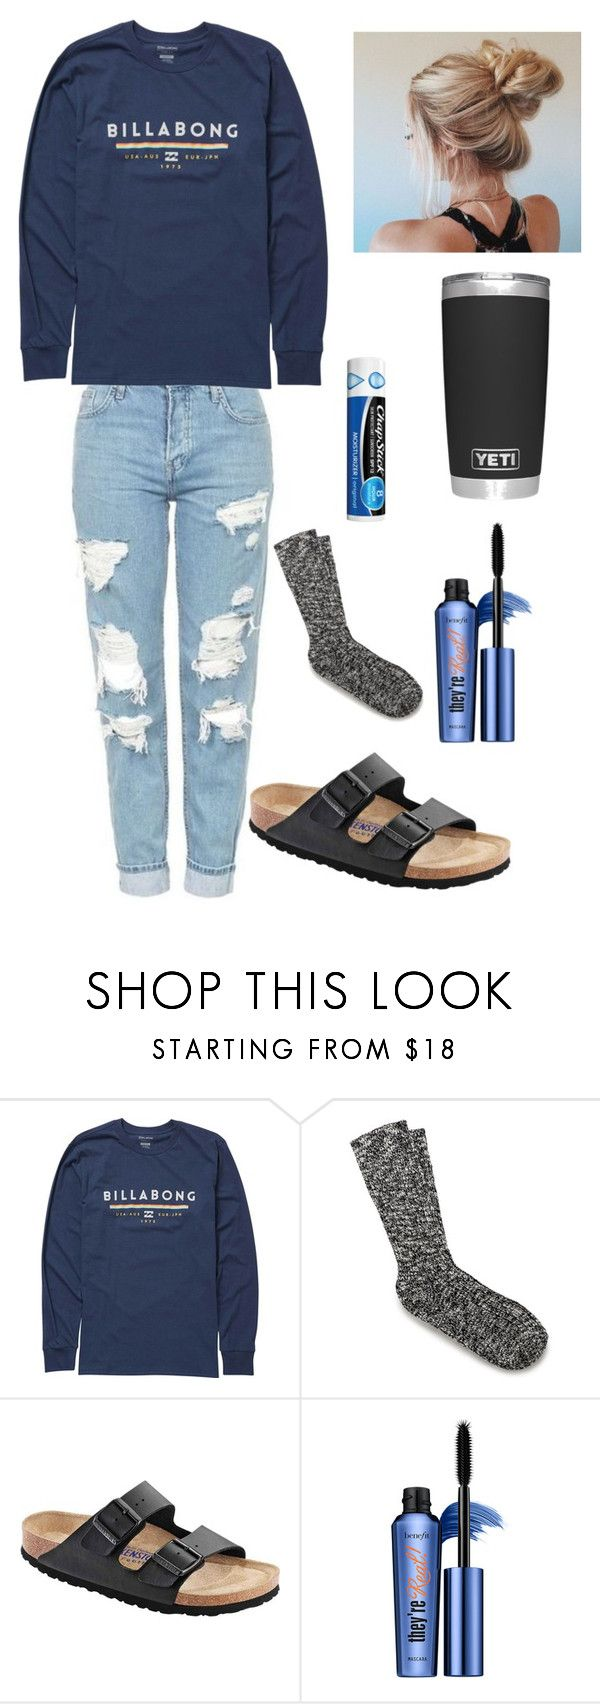 """Chill school outfit"" by lagr on Polyvore featuring Billabong, Birkenstock and Benefit"